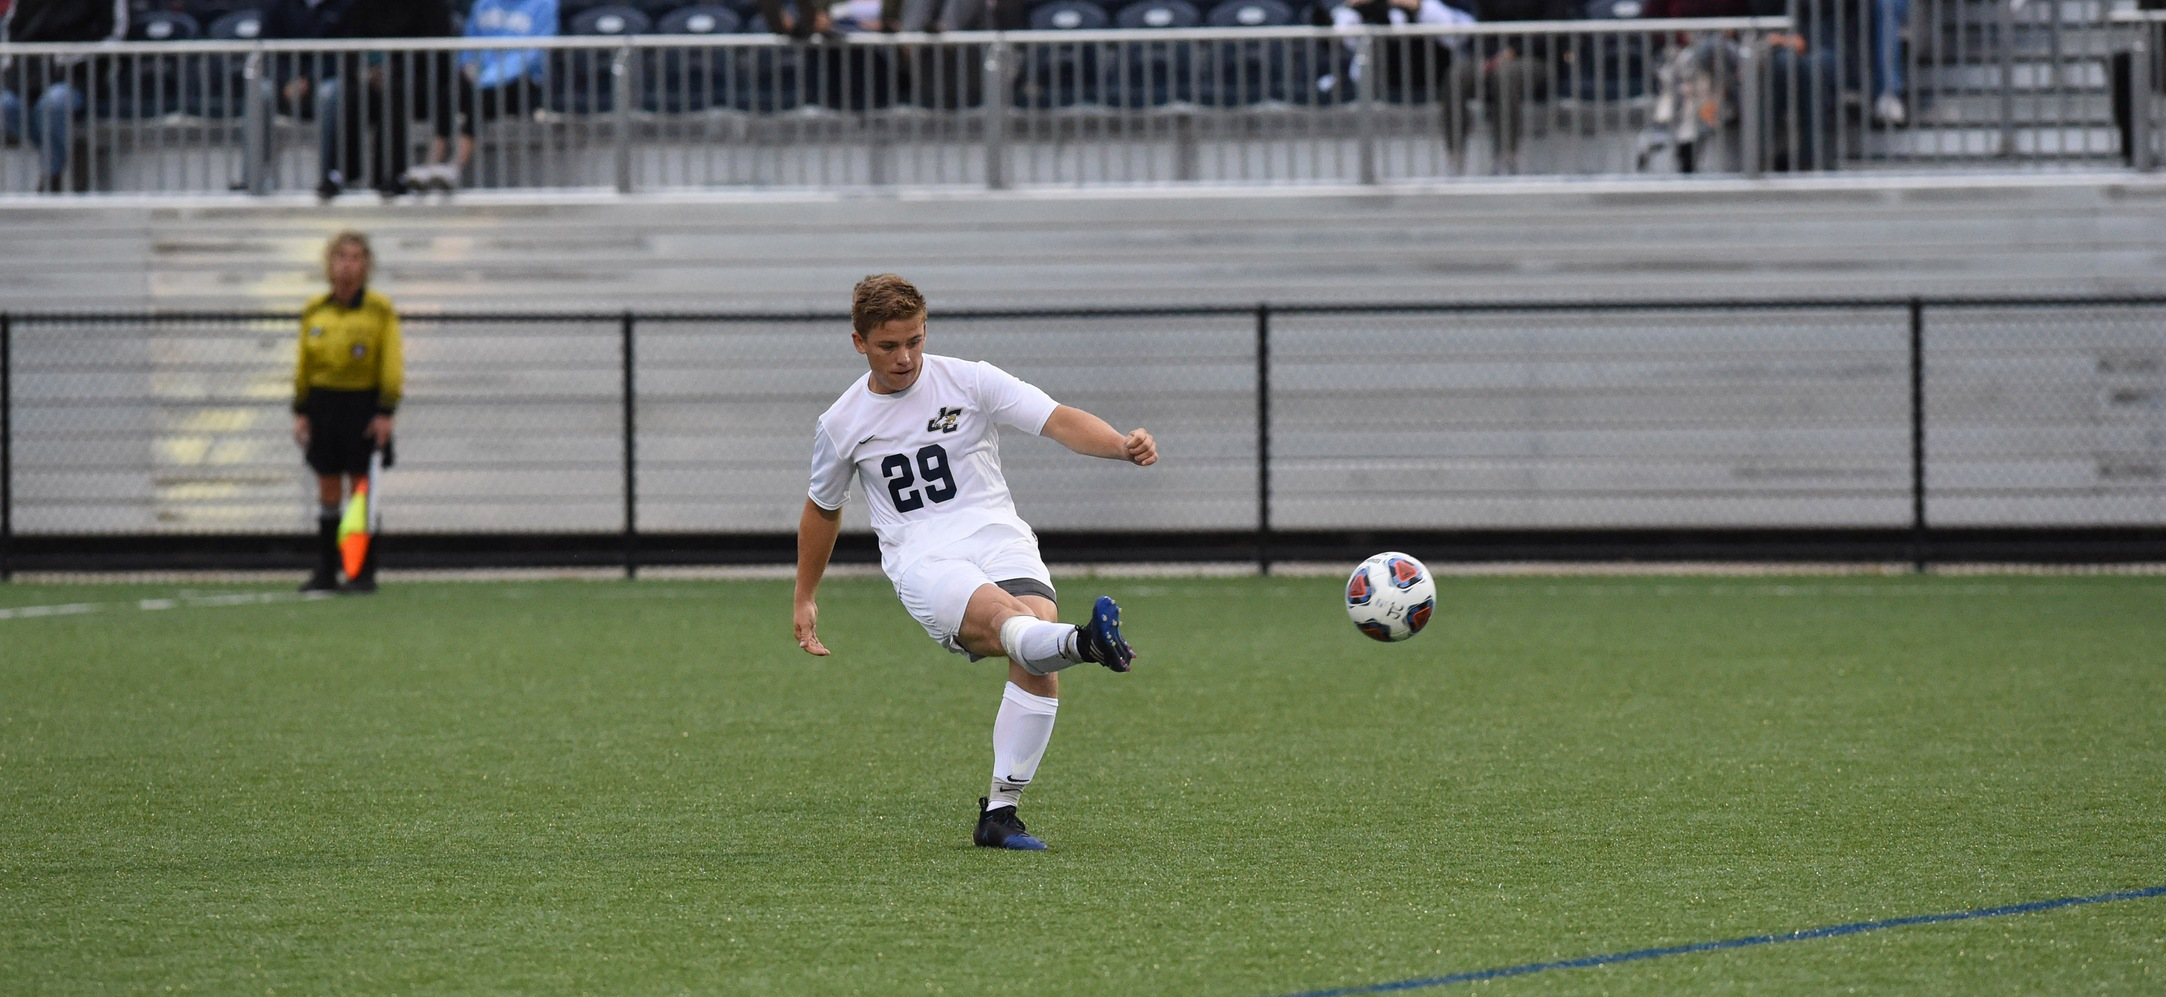 Eagles Concede Late, Fall to Mount Aloysius